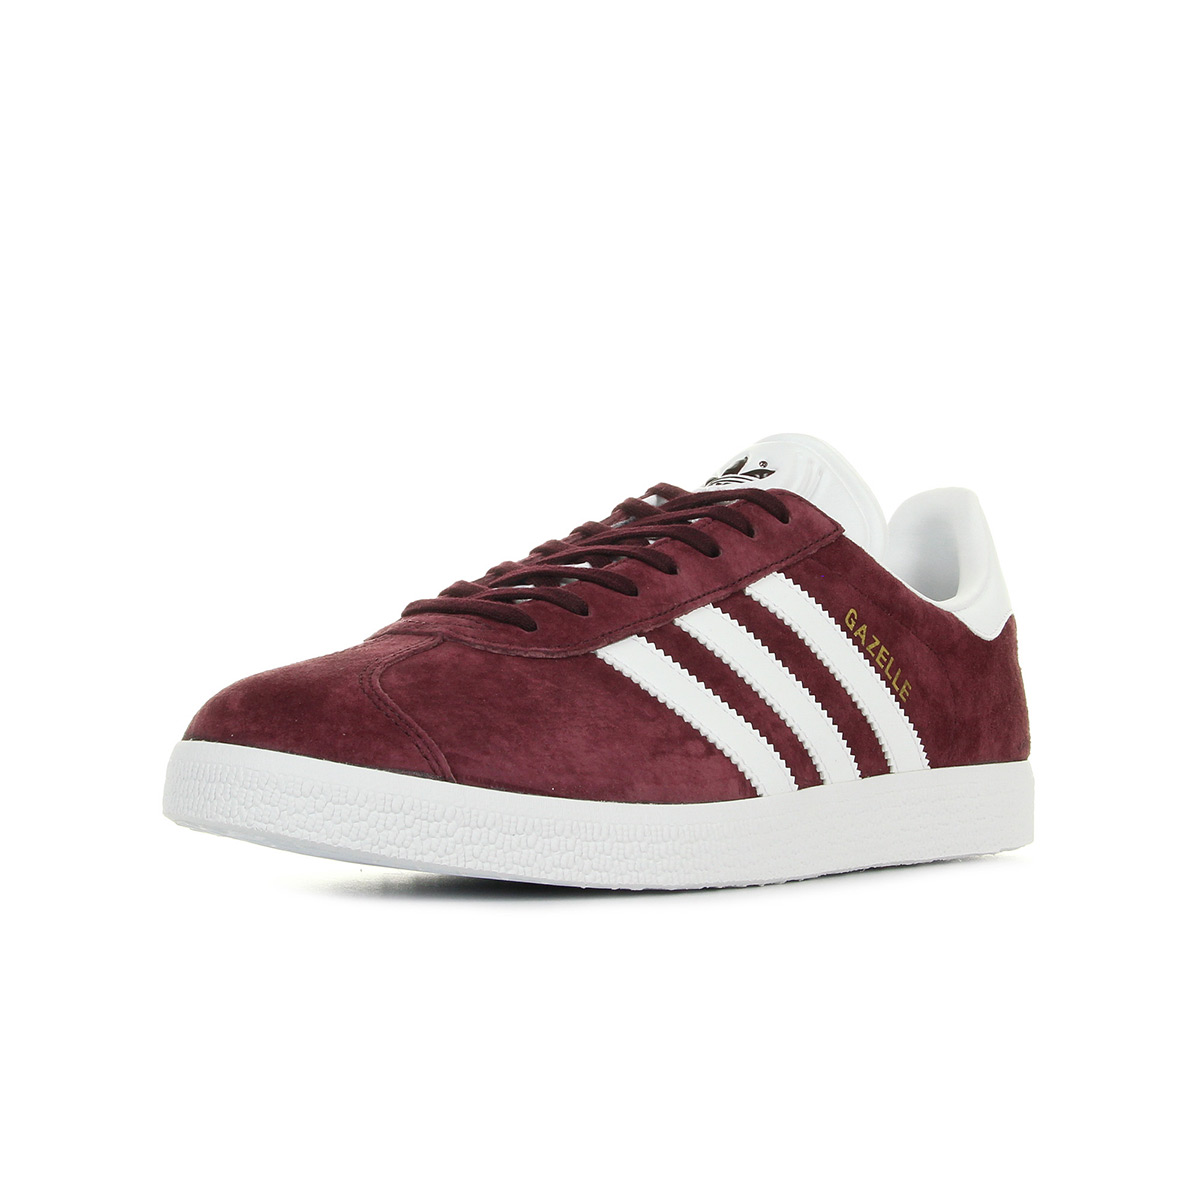 adidas gazelle bebe pas cher soldes adidas gazelle bebe pas cher chaussures adidas gazelle bebe. Black Bedroom Furniture Sets. Home Design Ideas